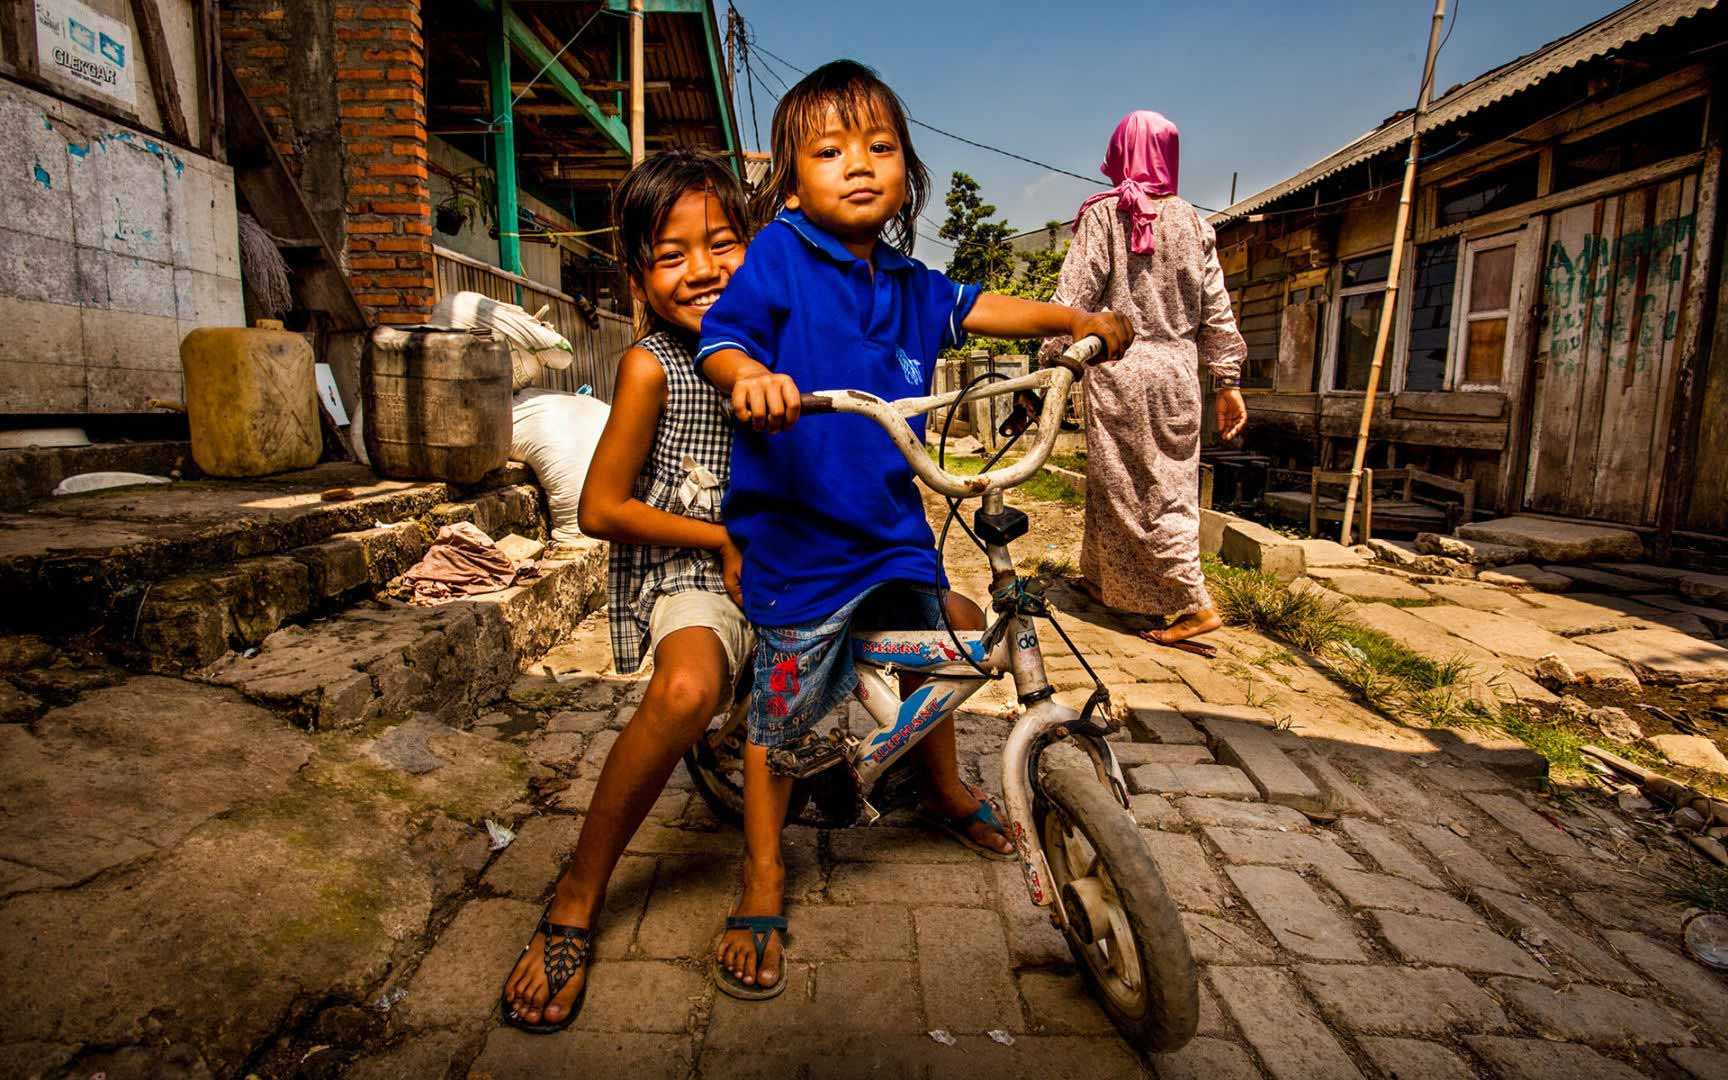 Two children sitting on a bicycle